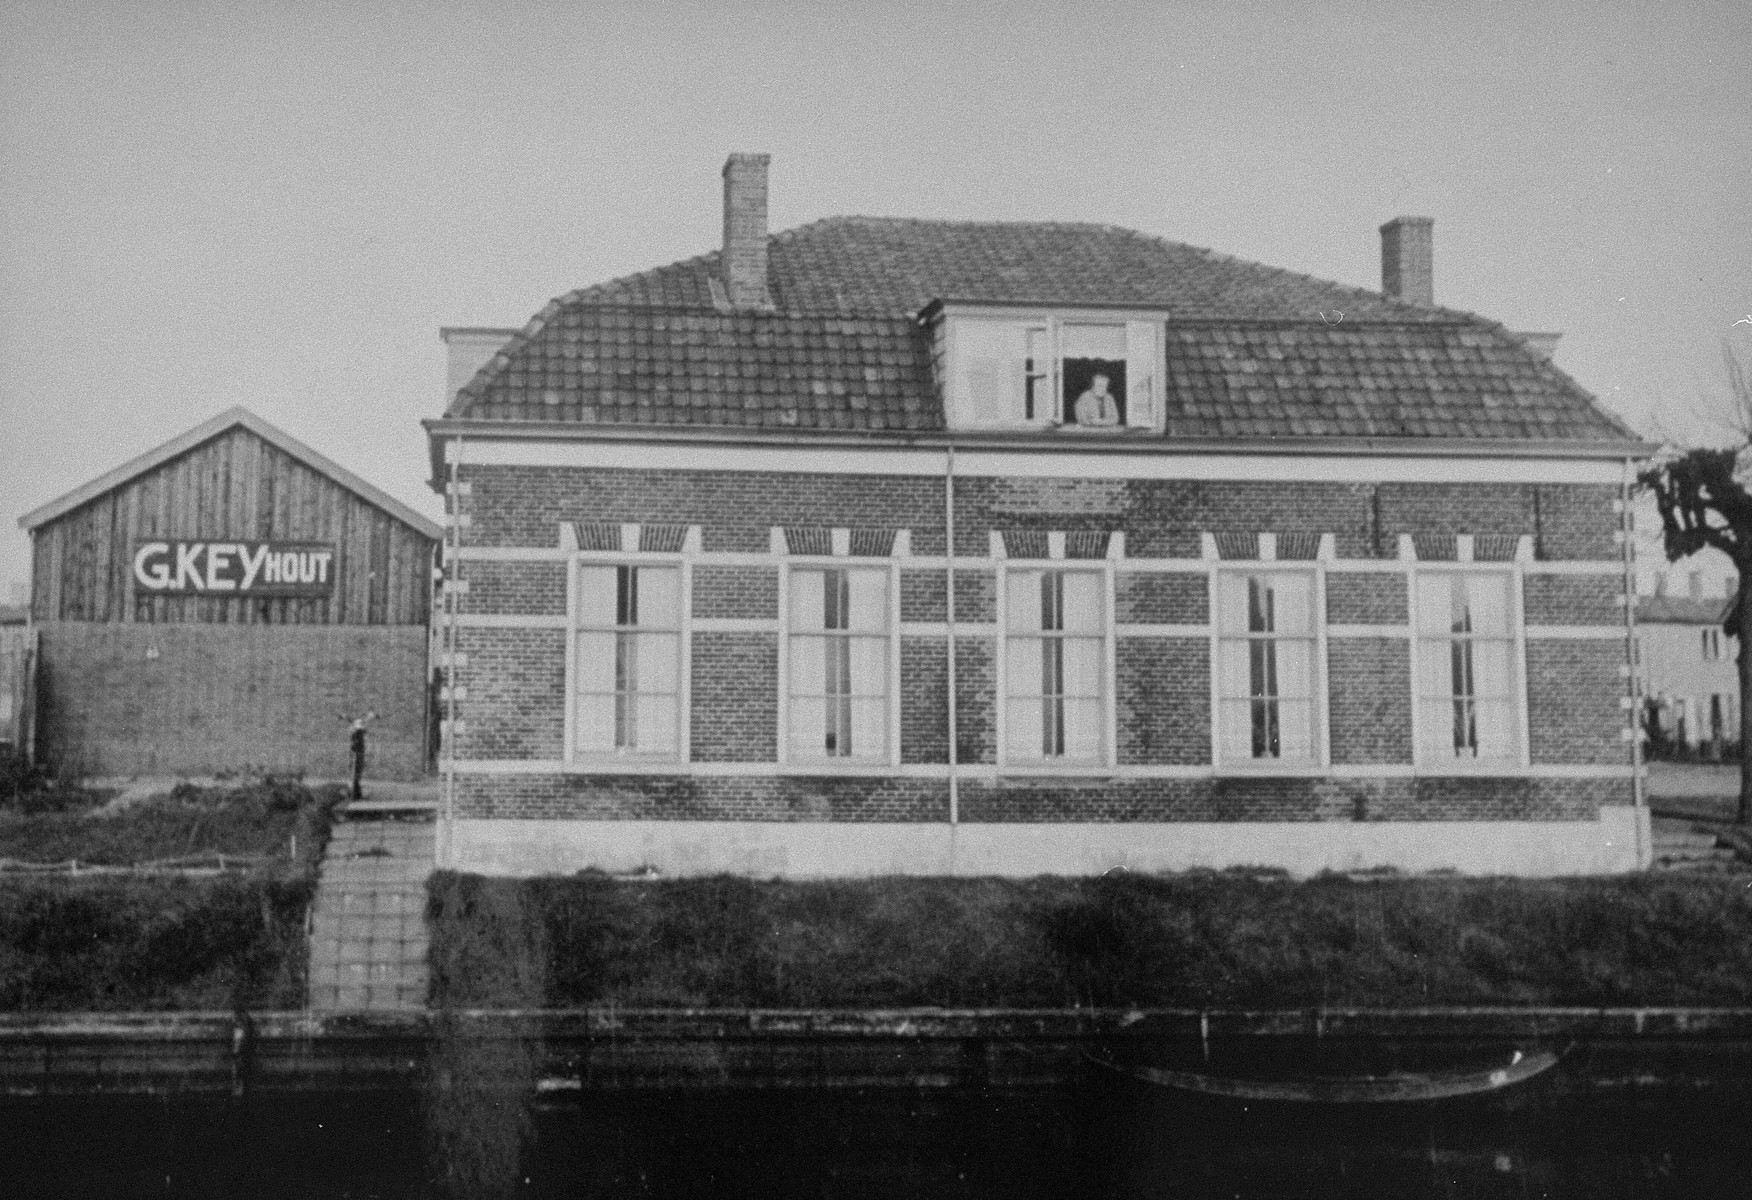 View of the Hornsveld family house in which Flory and Felix Van Beek found refuge during the war.   The house was located on the outskirts of the town, but across from Gestapo headquarters.  Fleeing the SS the Van Beeks knocked on the door of the Hornsweld family in the middle of the night on January 21, 1944 and stayed until the end of the war.